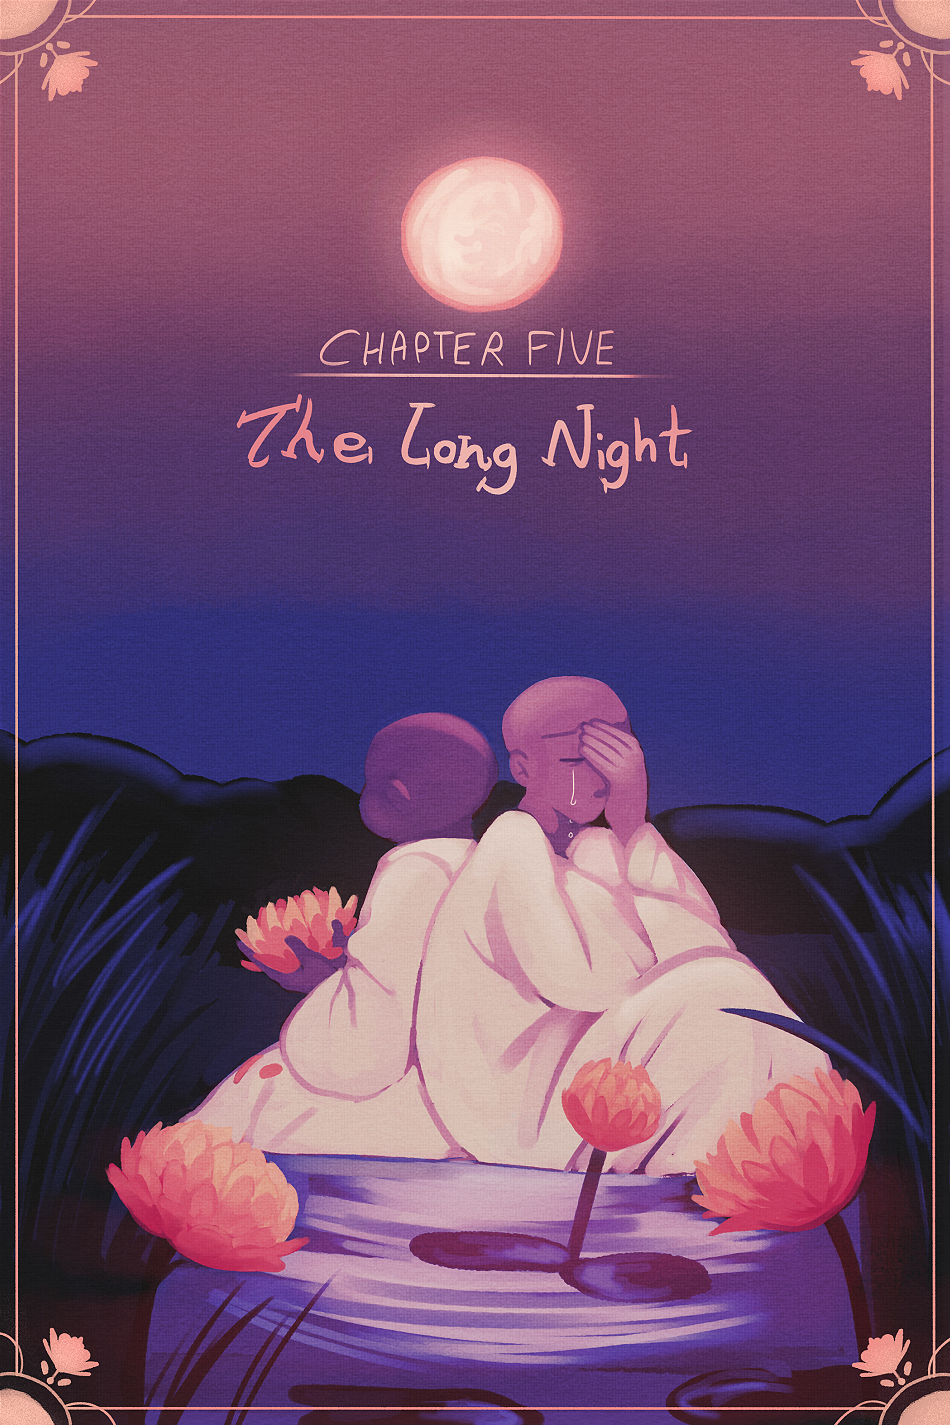 Chapter 5 - The Long Night